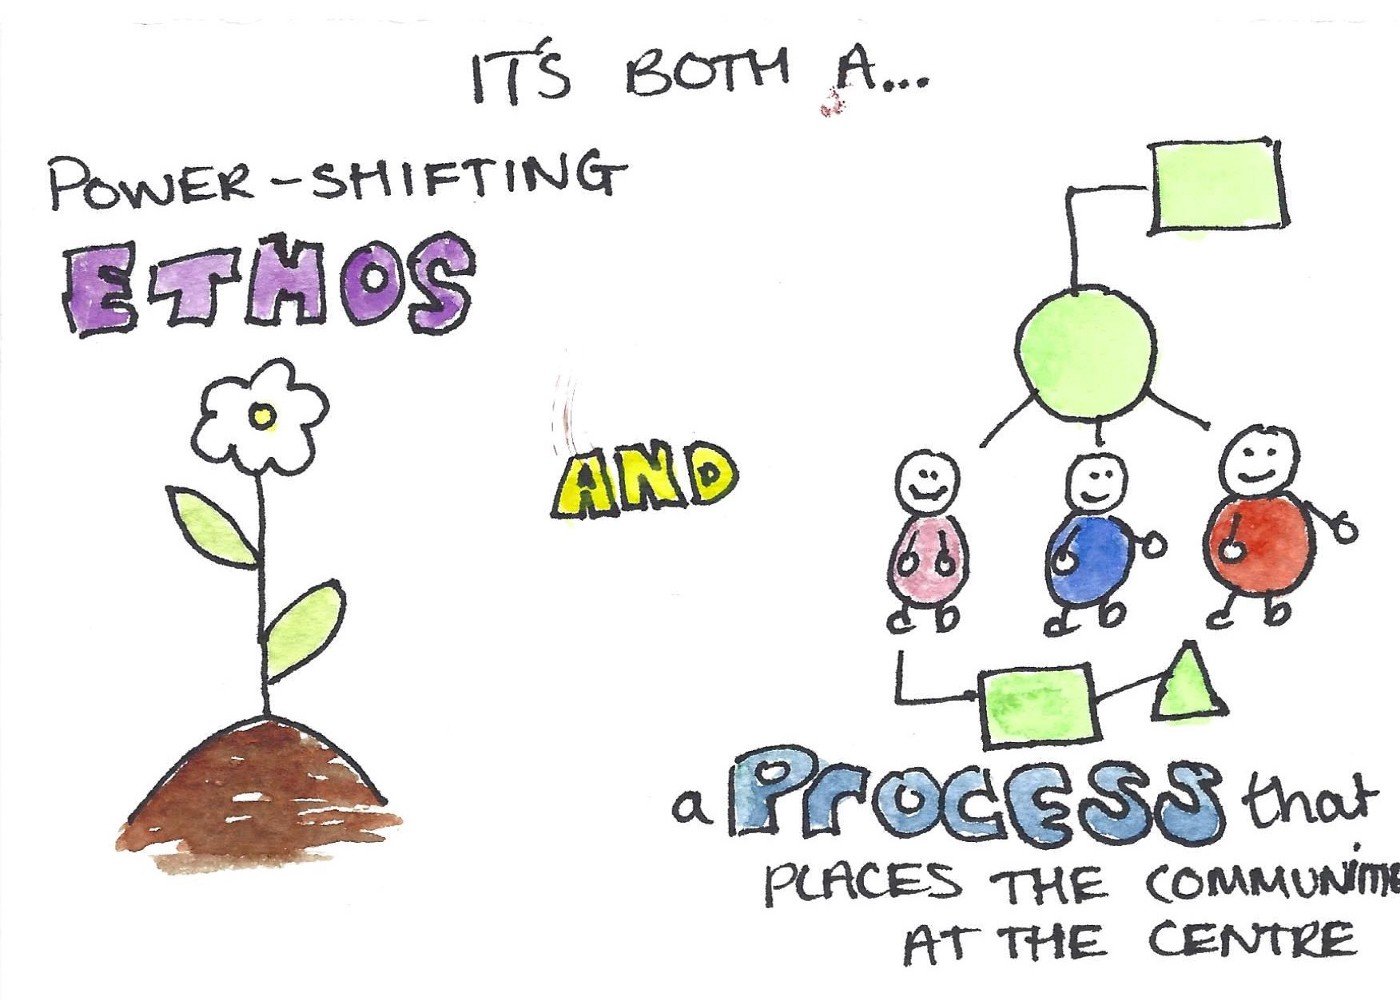 a cartoon depicting 'it's both a power-shifting ethos and a process that places the communities at the centre'